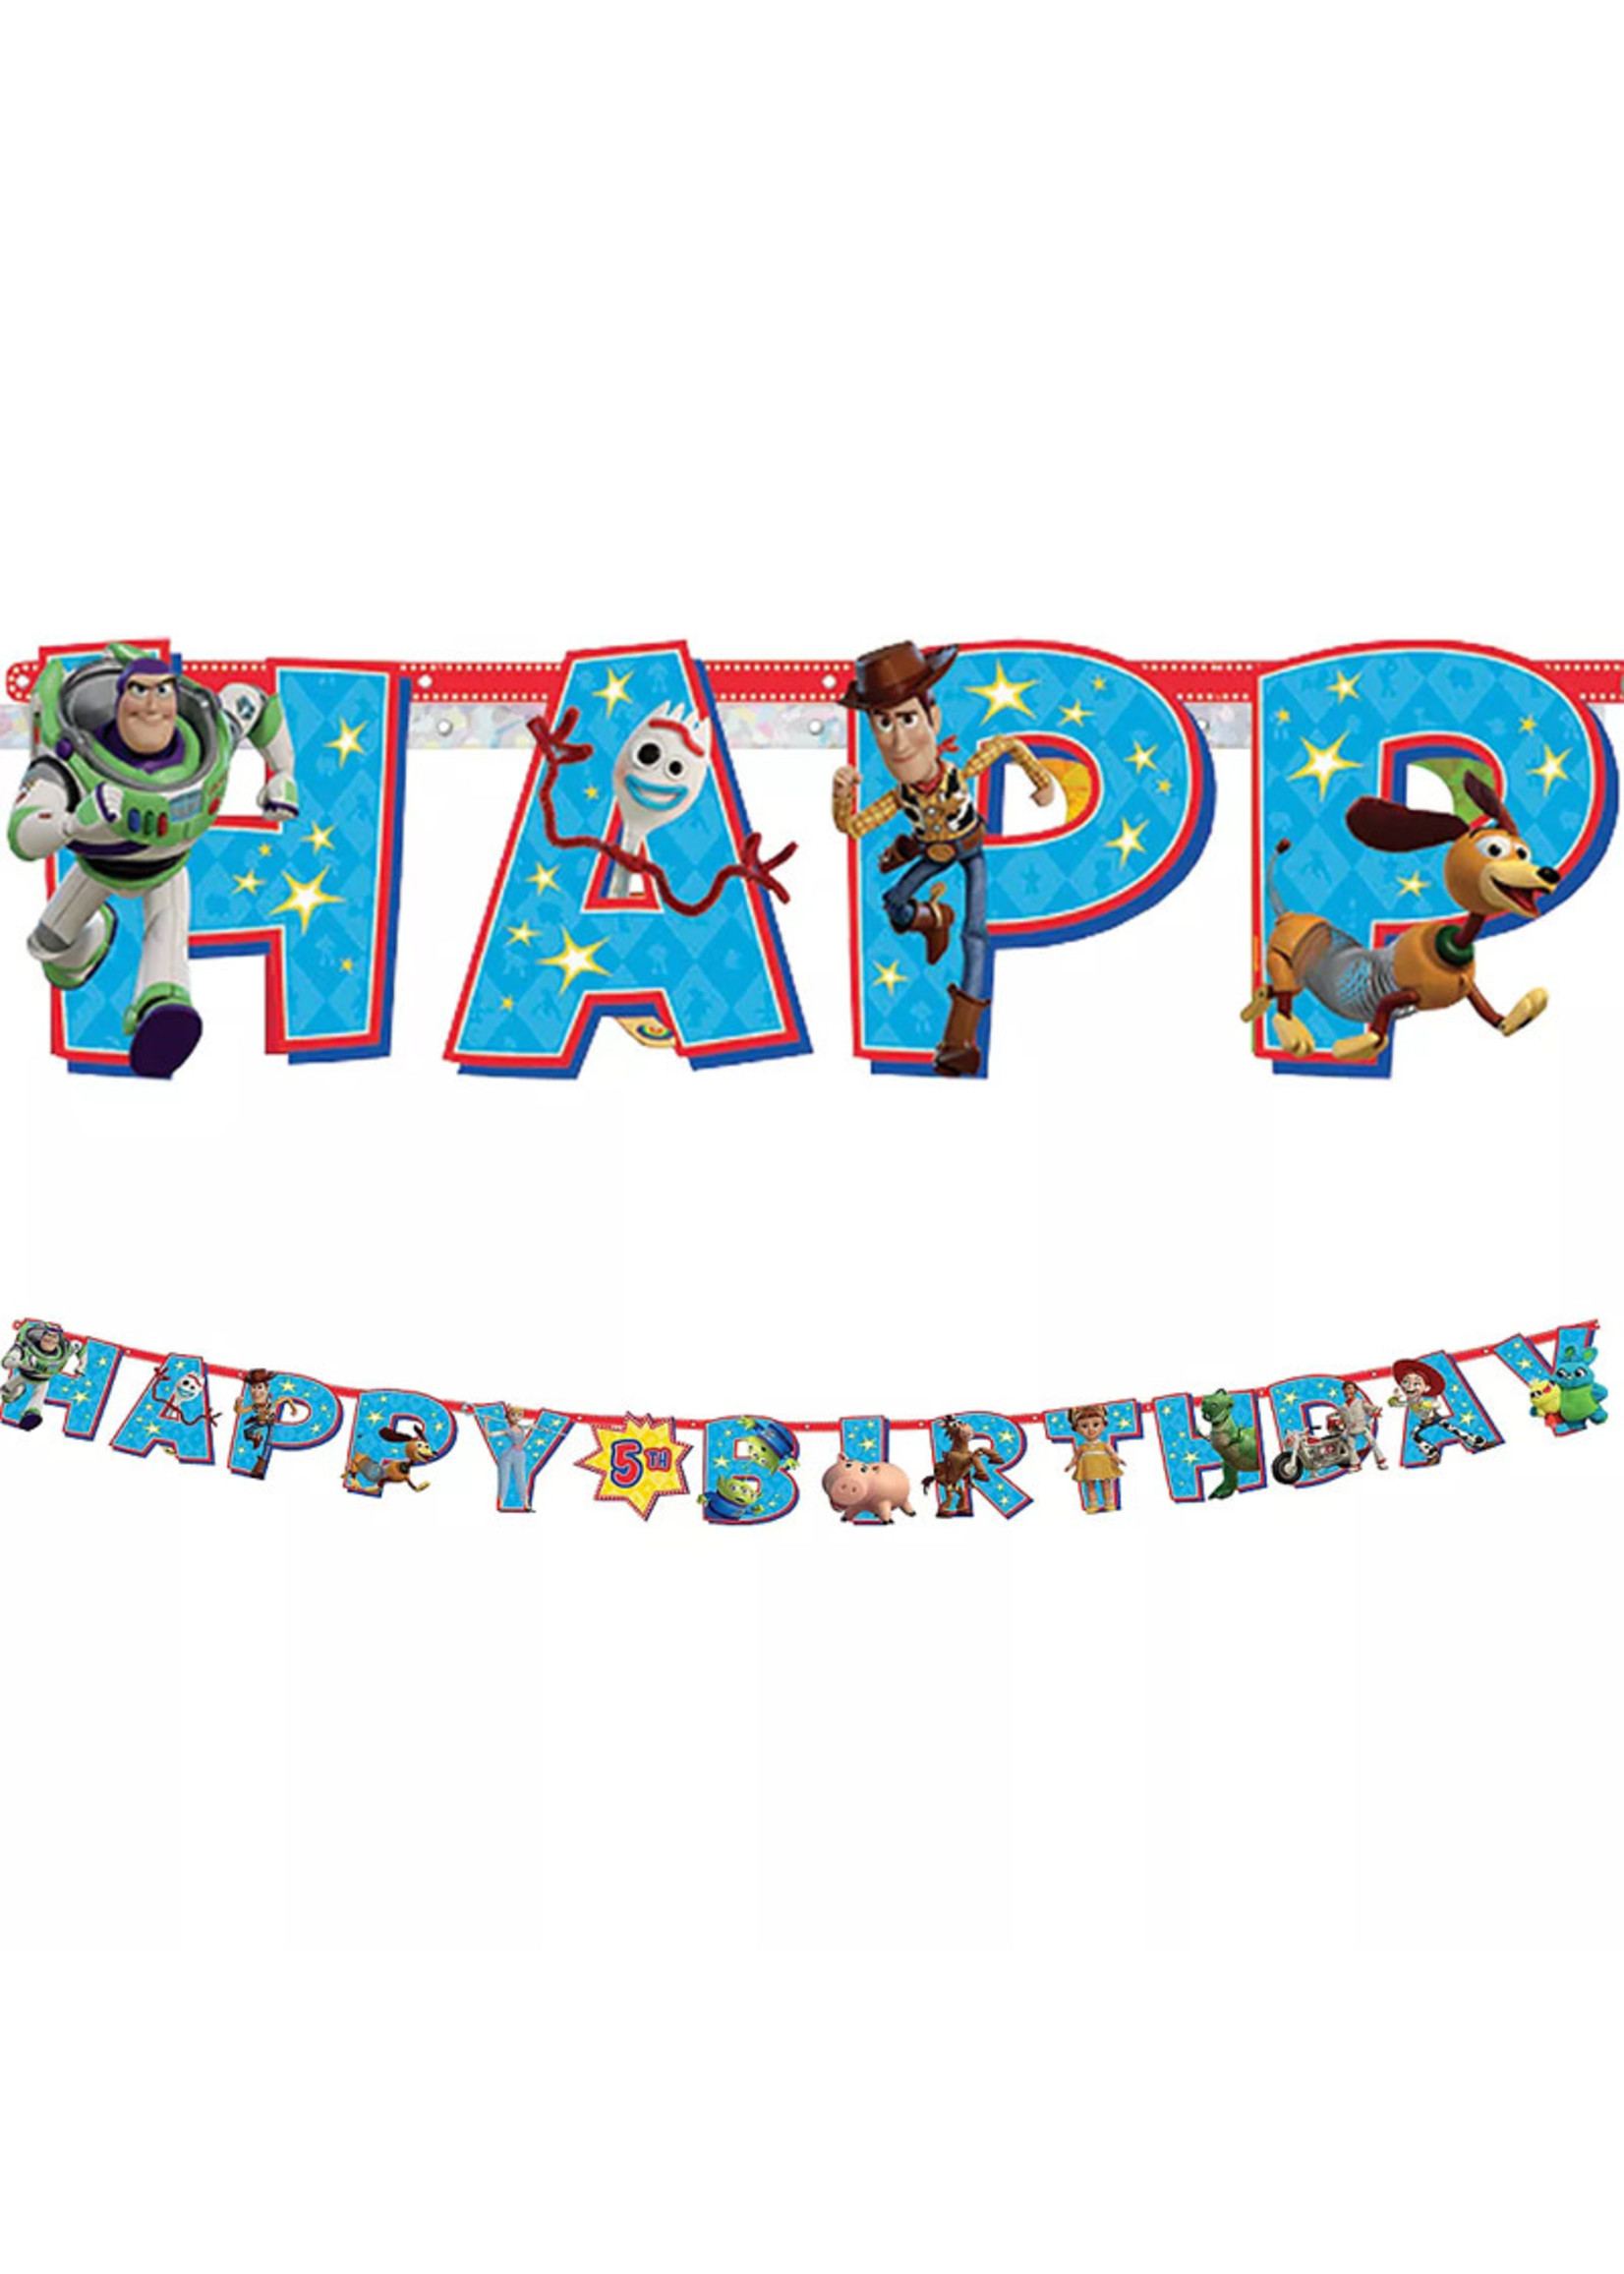 Toy Story 4 Birthday Banner Kit